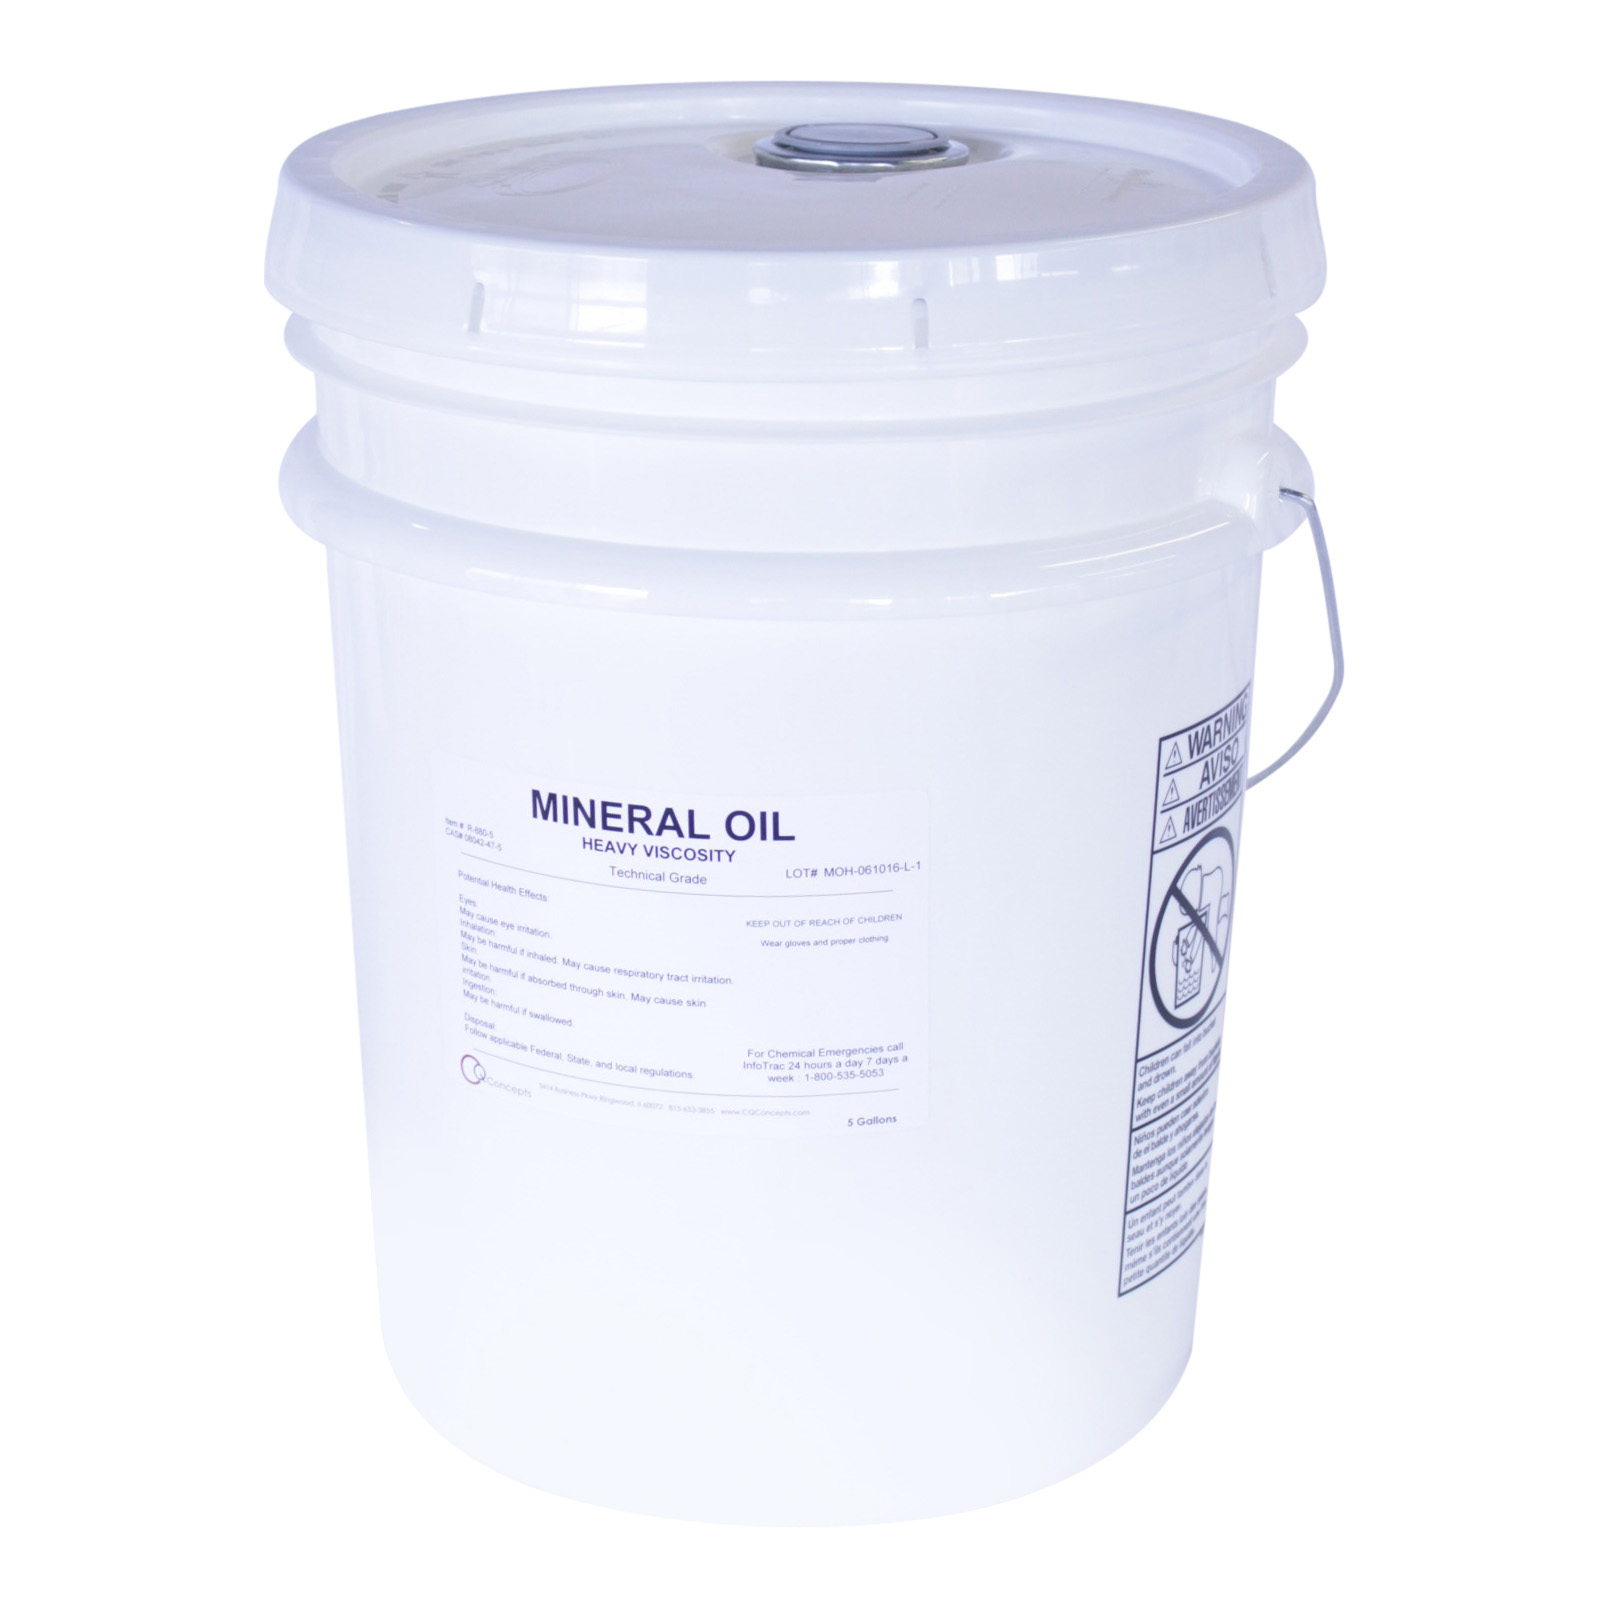 Mineral Oil Heavy Viscosity- 5 Gallons